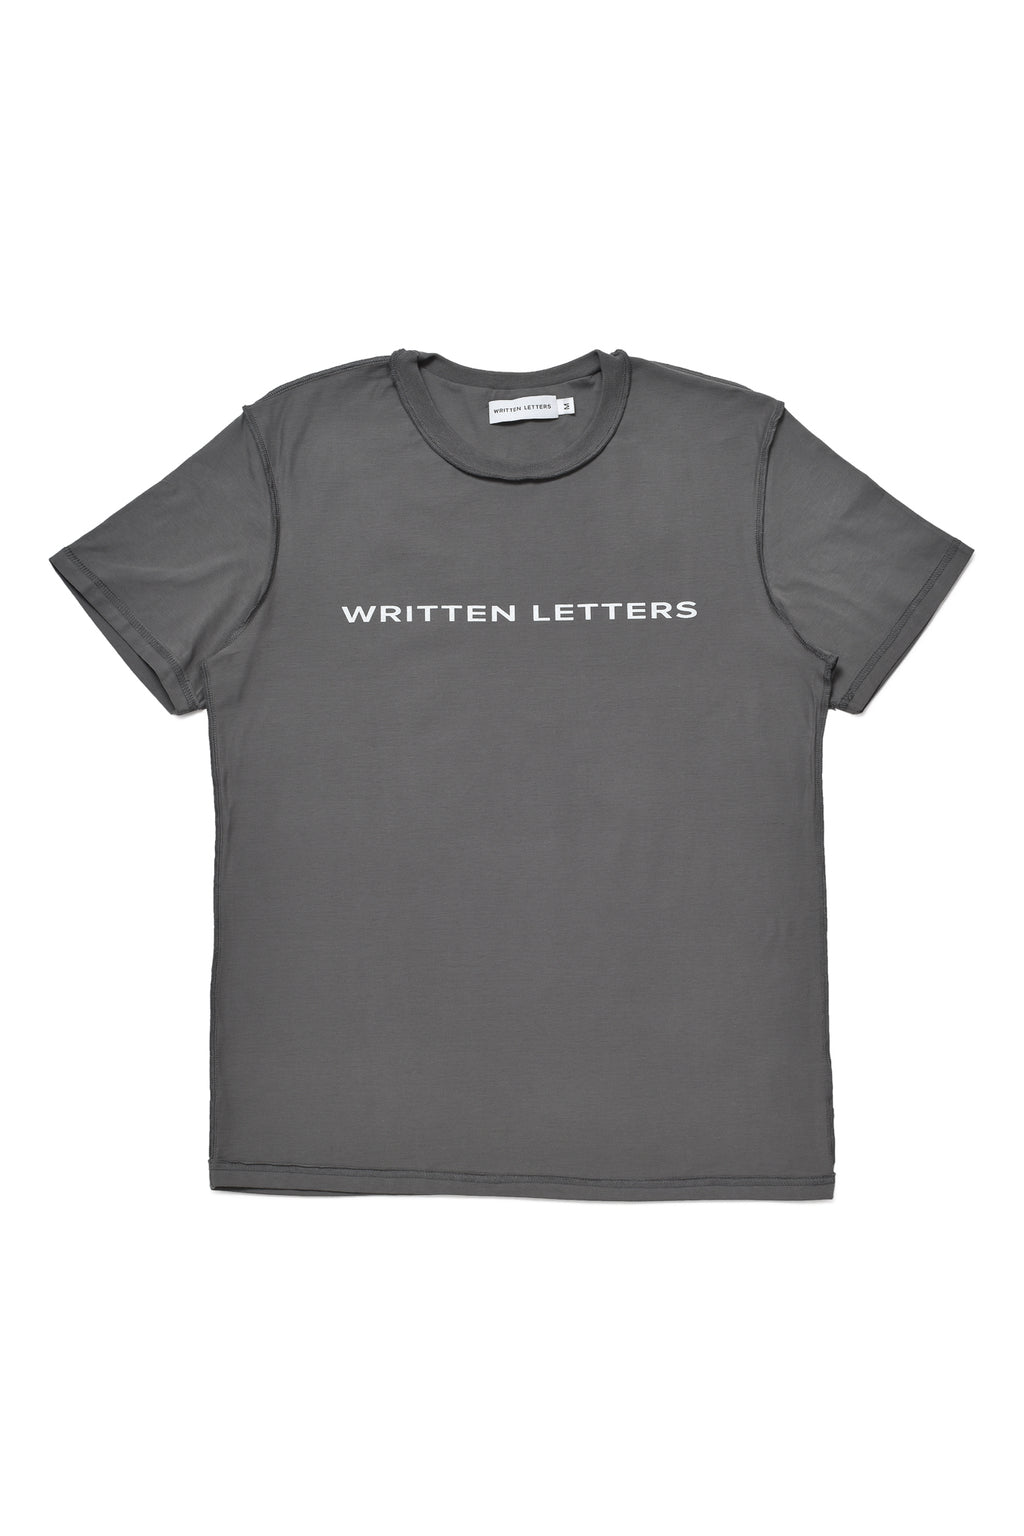 Grey 'Written Letters' T-Shirt